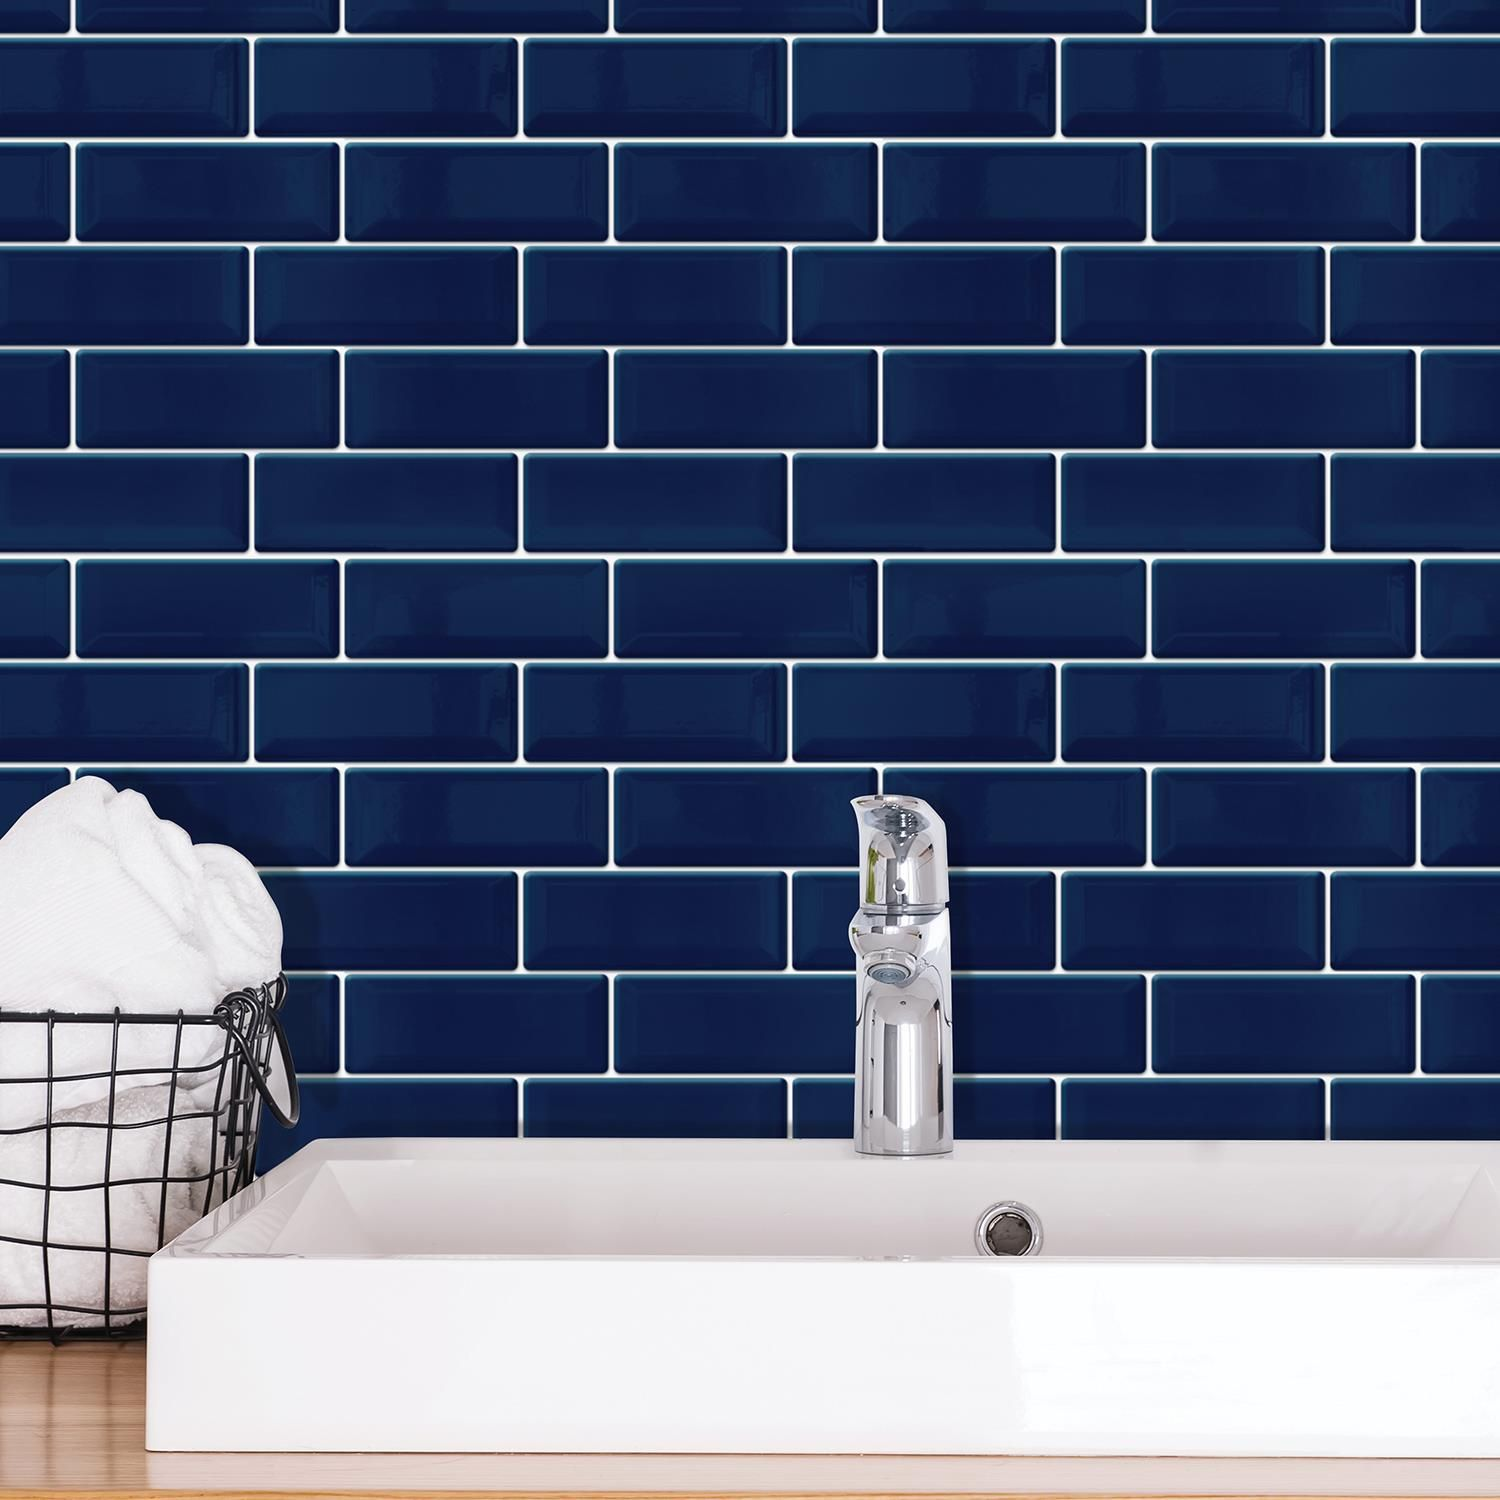 Deep Blue Glossy 3D Sticker Tile 30 x 15cm - 12 pcs 3D Tiles Wall Stickers, Kitchen, Bathroom, Living room, peel and stick